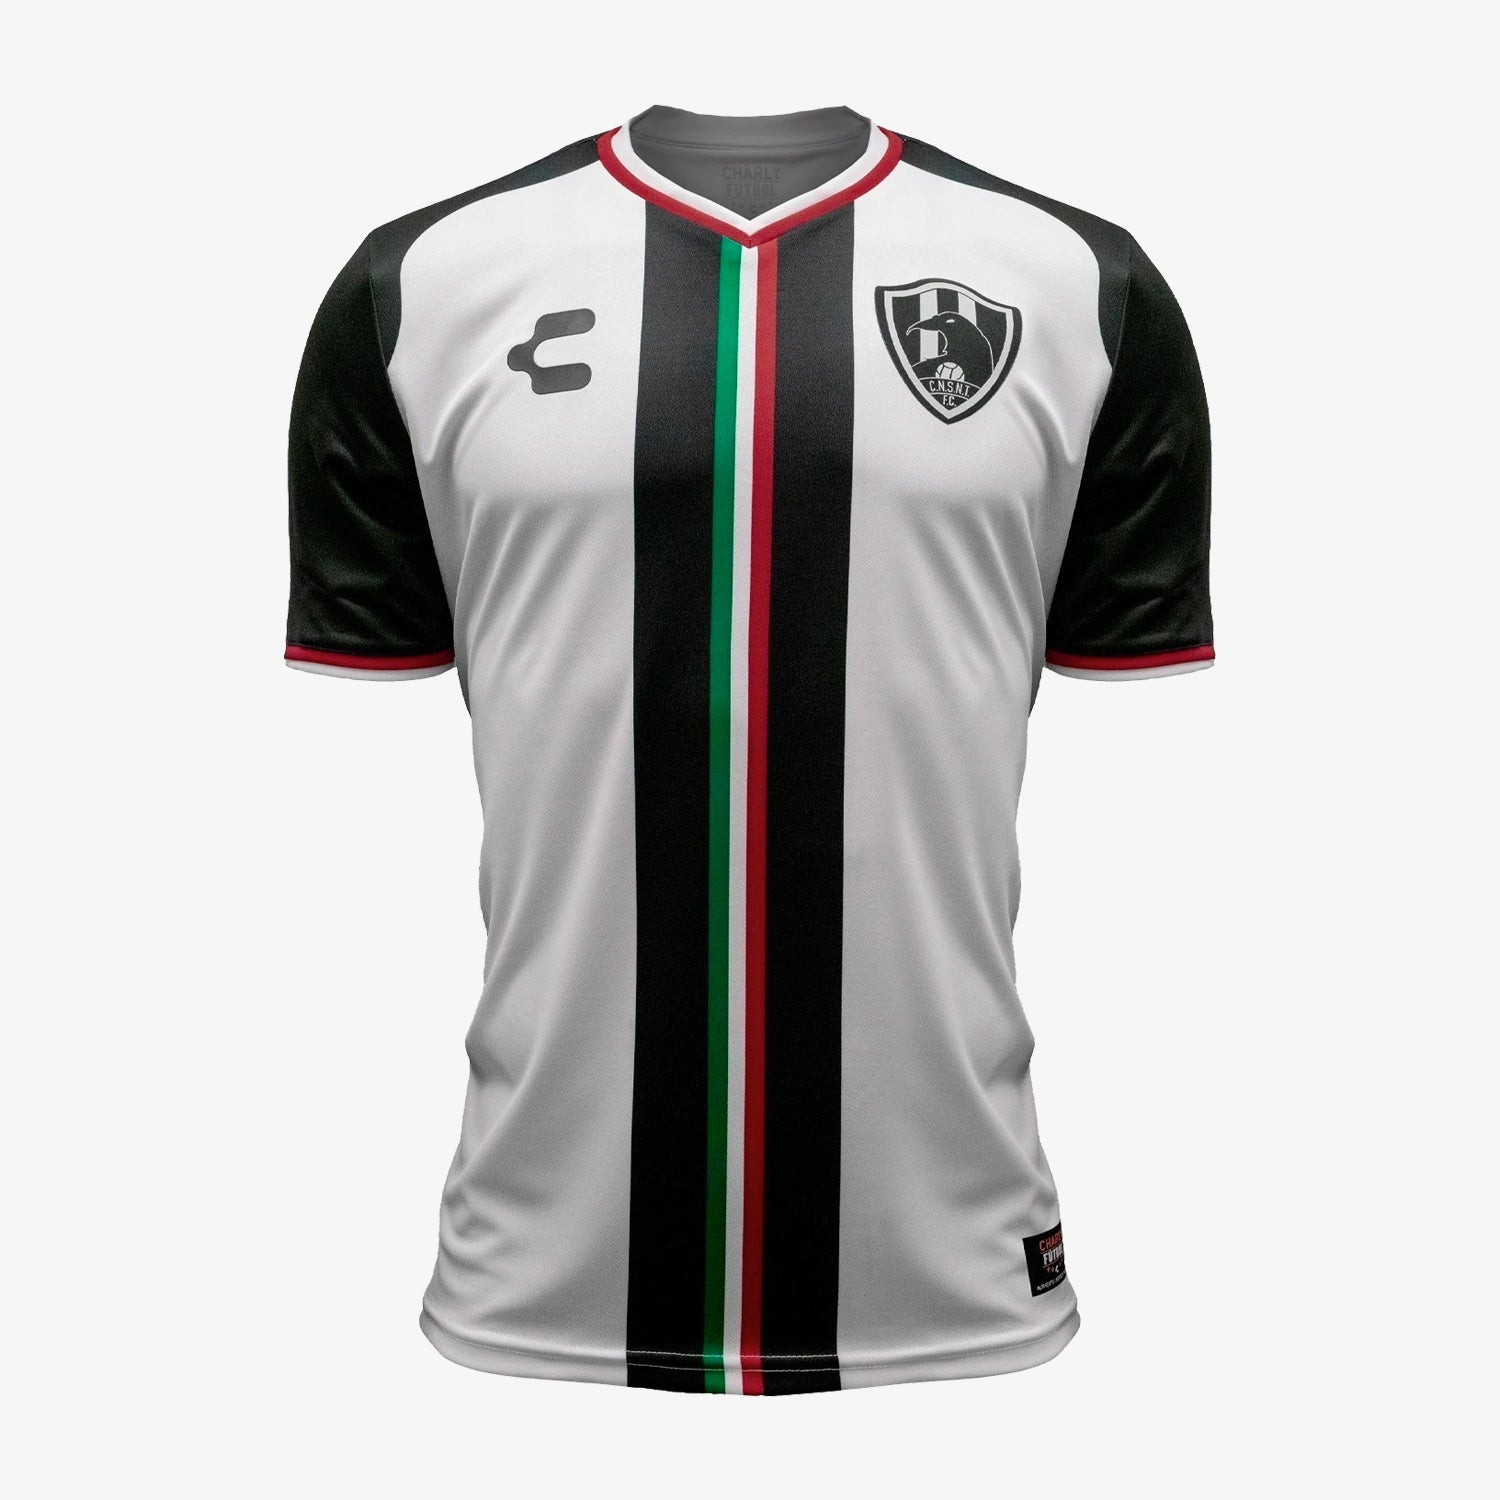 Mens C.N.S.N.T Cuervos 18/19 Home Soccer Jersey - White/Black/Green/Red